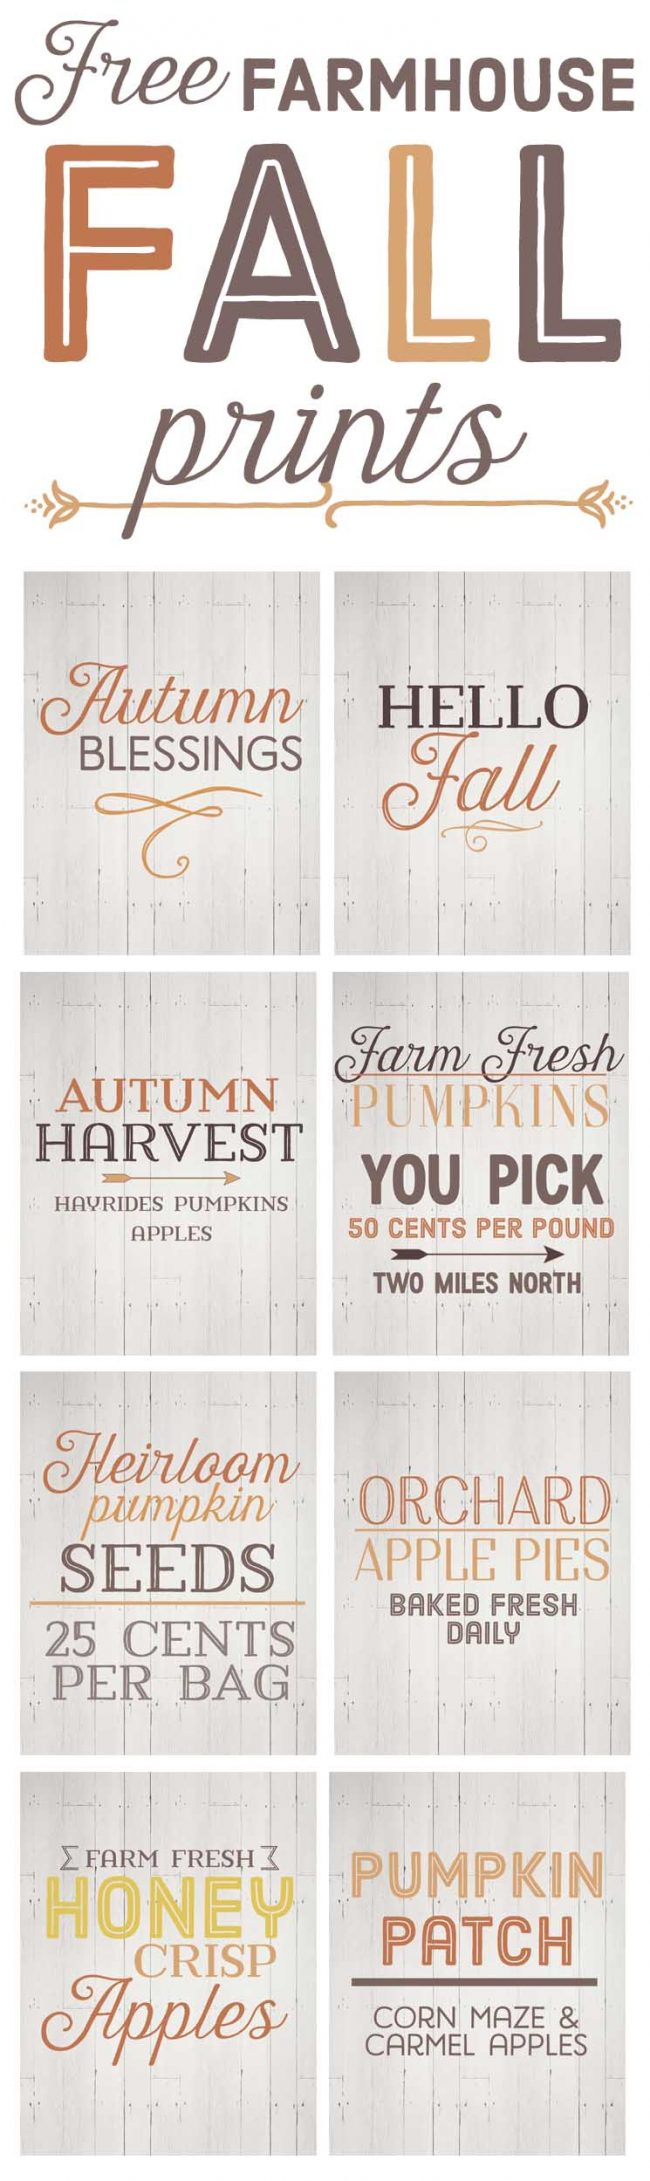 picture relating to Free Fall Printable called Totally free Farmhouse Slide Printables for the Farmhouse Associate!